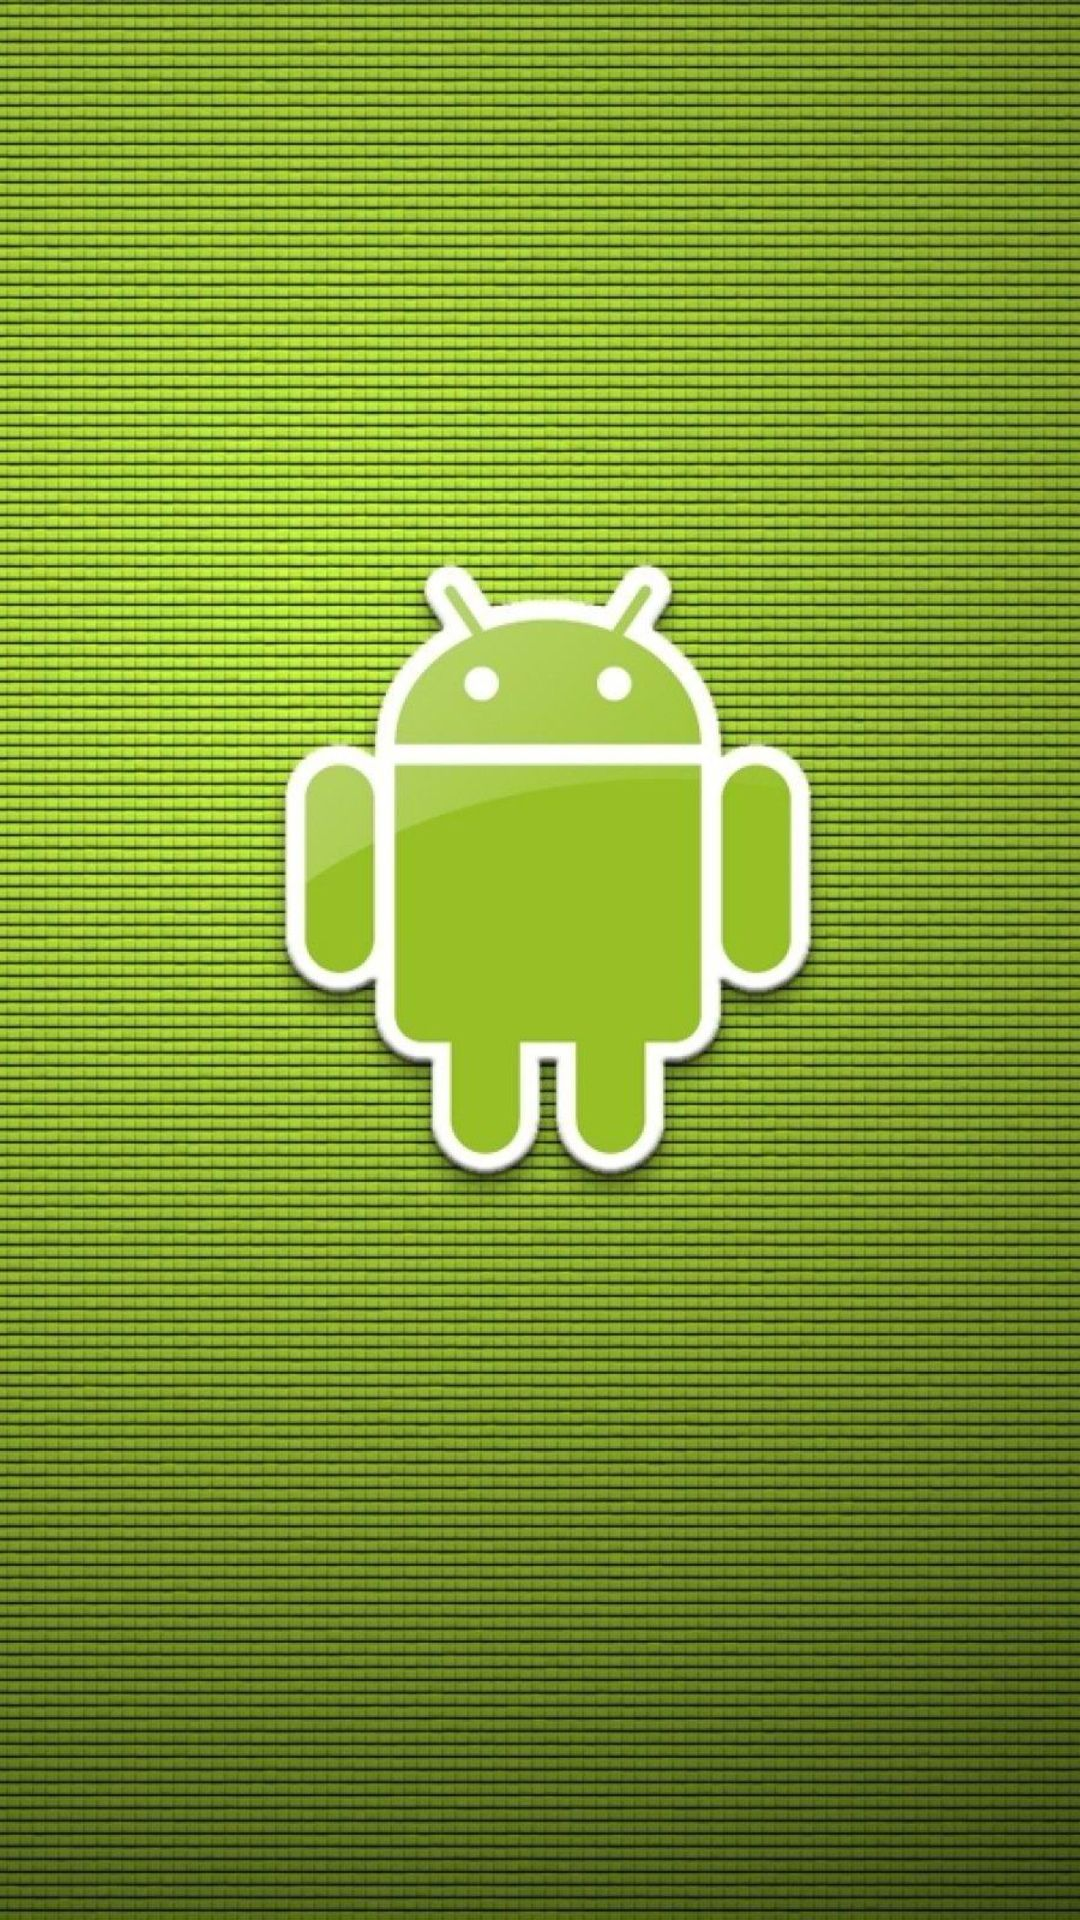 green android logo preview and download free androidandroid appswallpaper